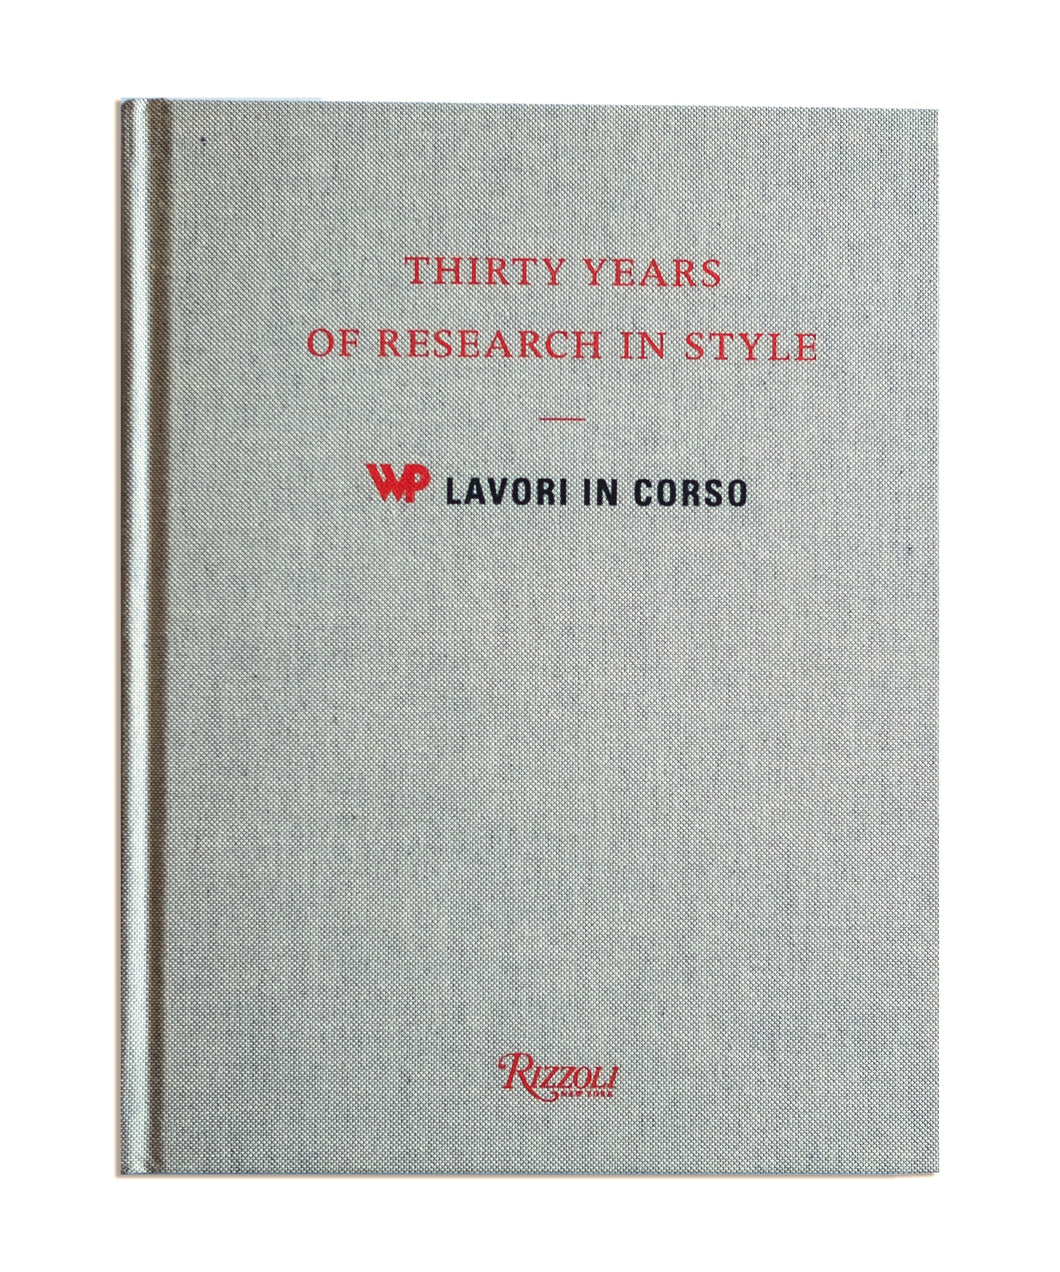 30 Years of Research in Style. WP Lavori in Corso